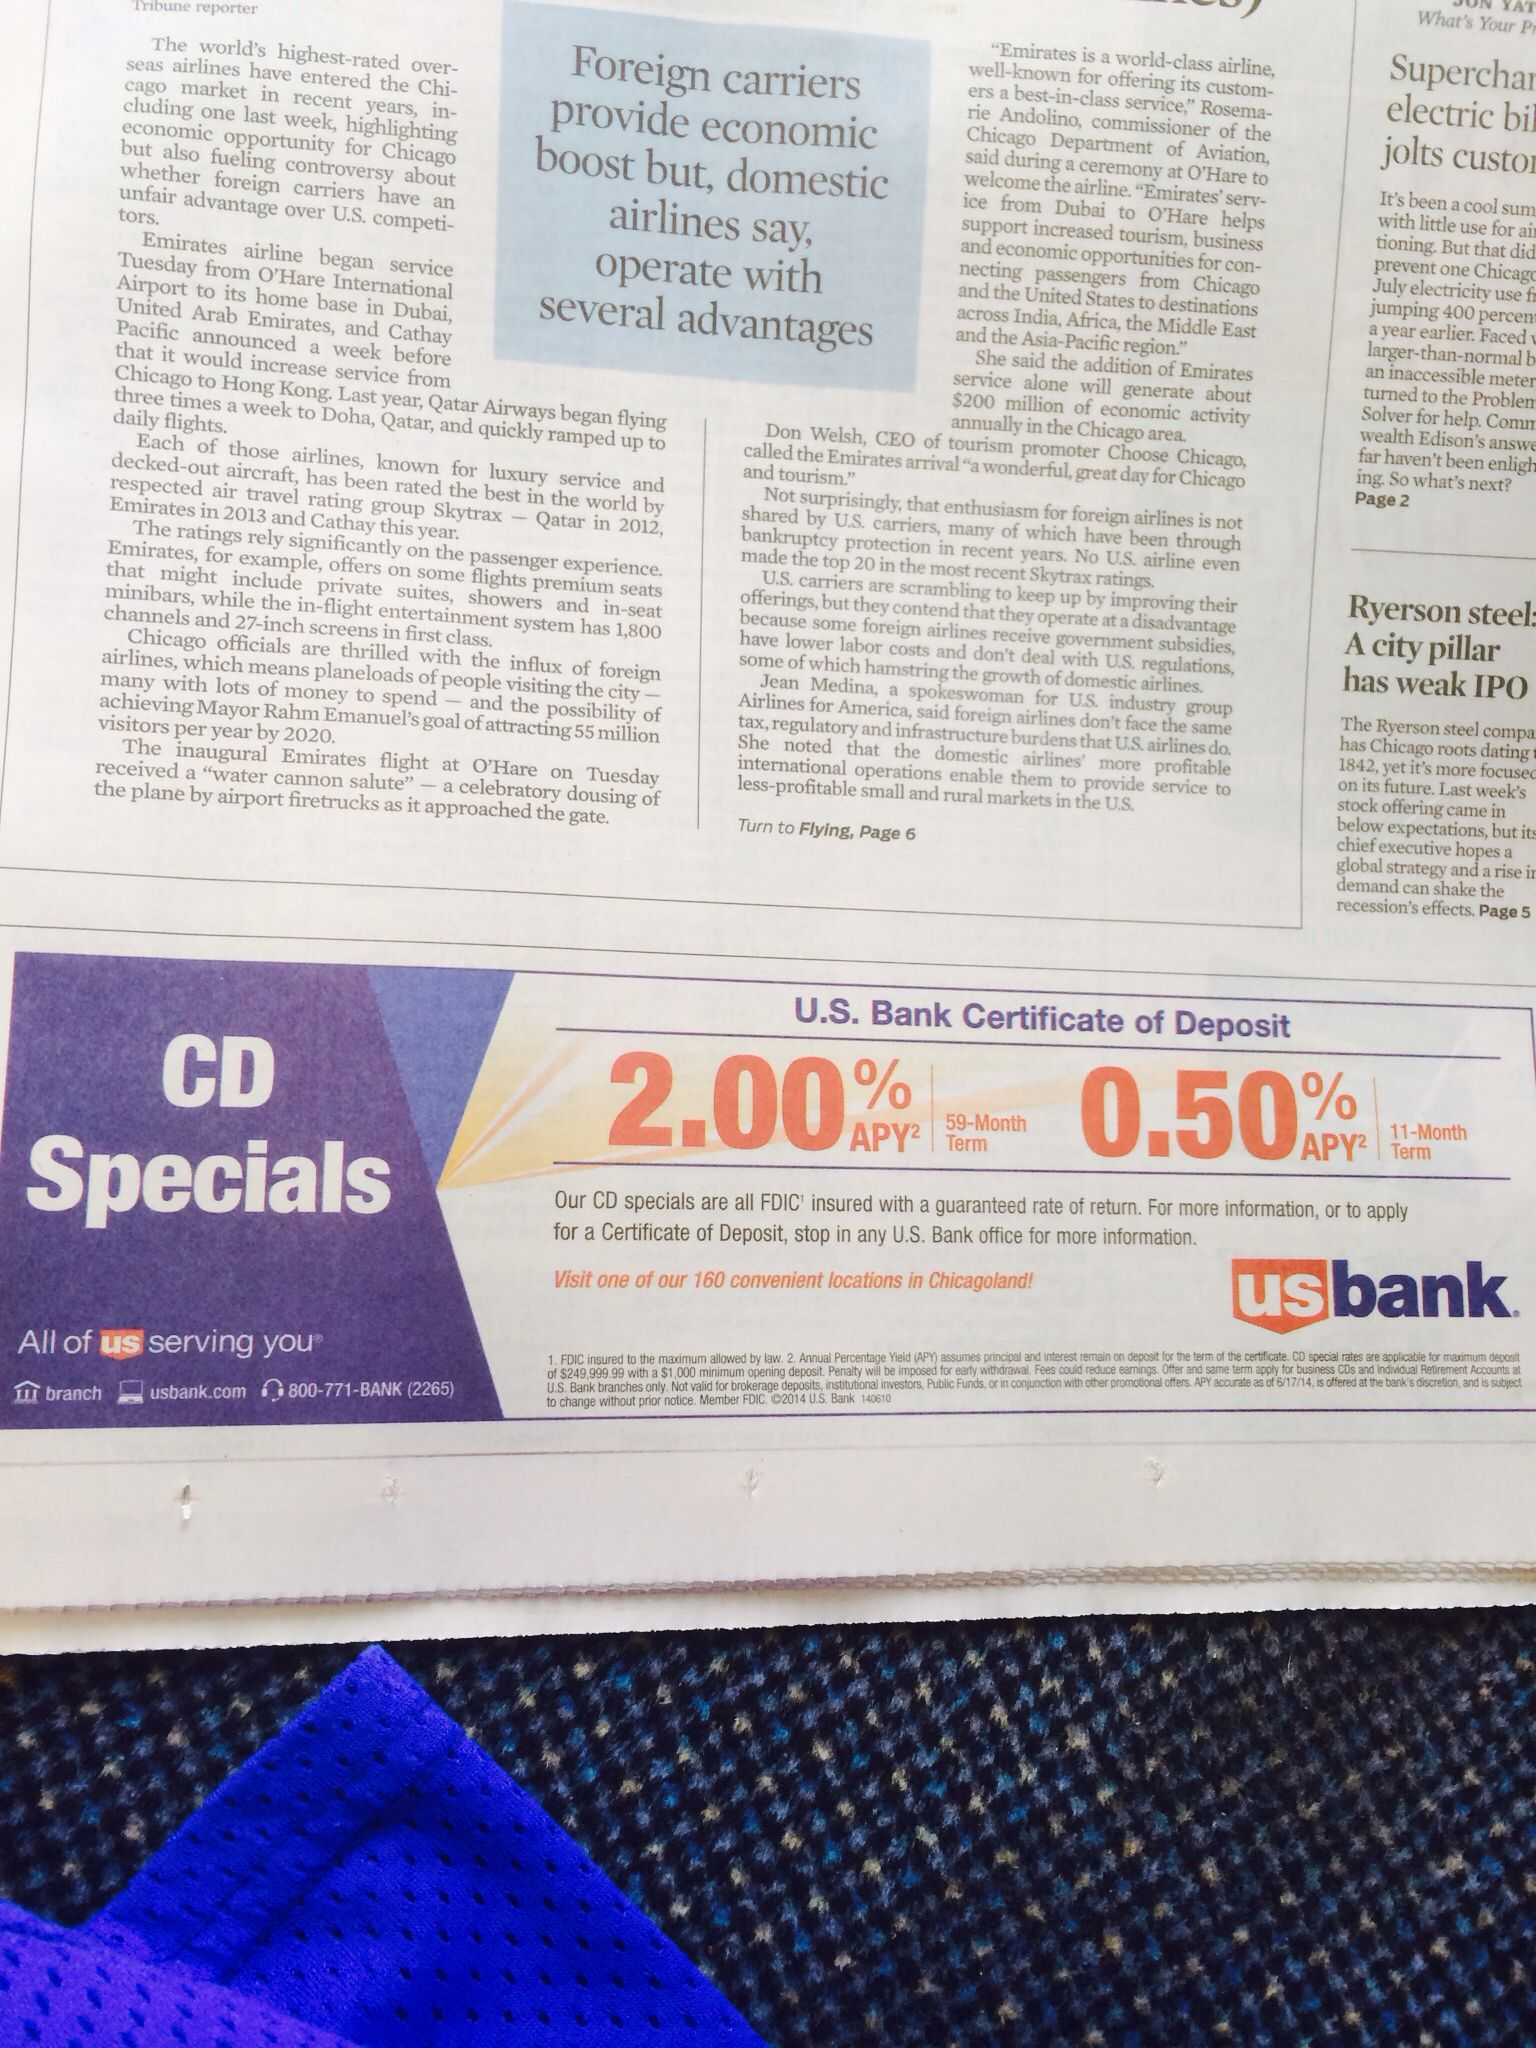 8 10 14 Us Bank Offers 2 05apys On 59 Month 11 Month Cds